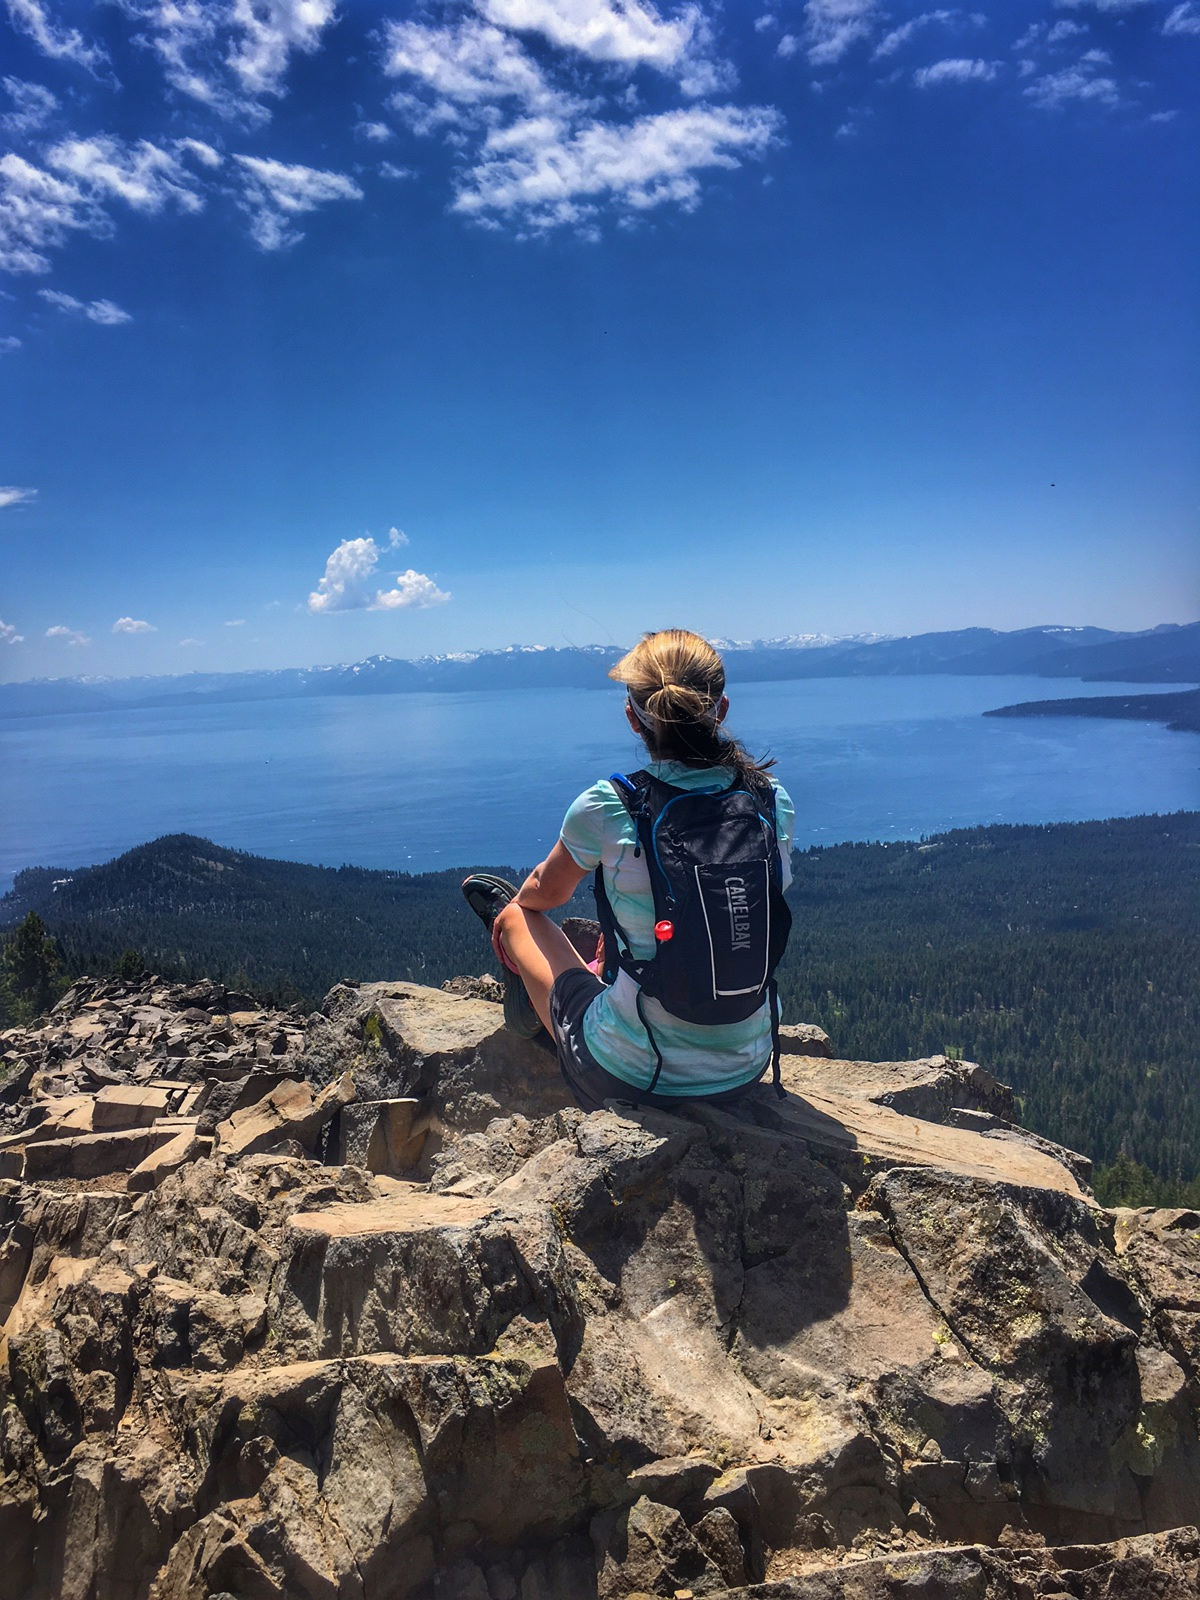 photo: Jenelle Potvin on the Tahoe Rim Trail running home to Truckee. Photo by Lucas Horan.